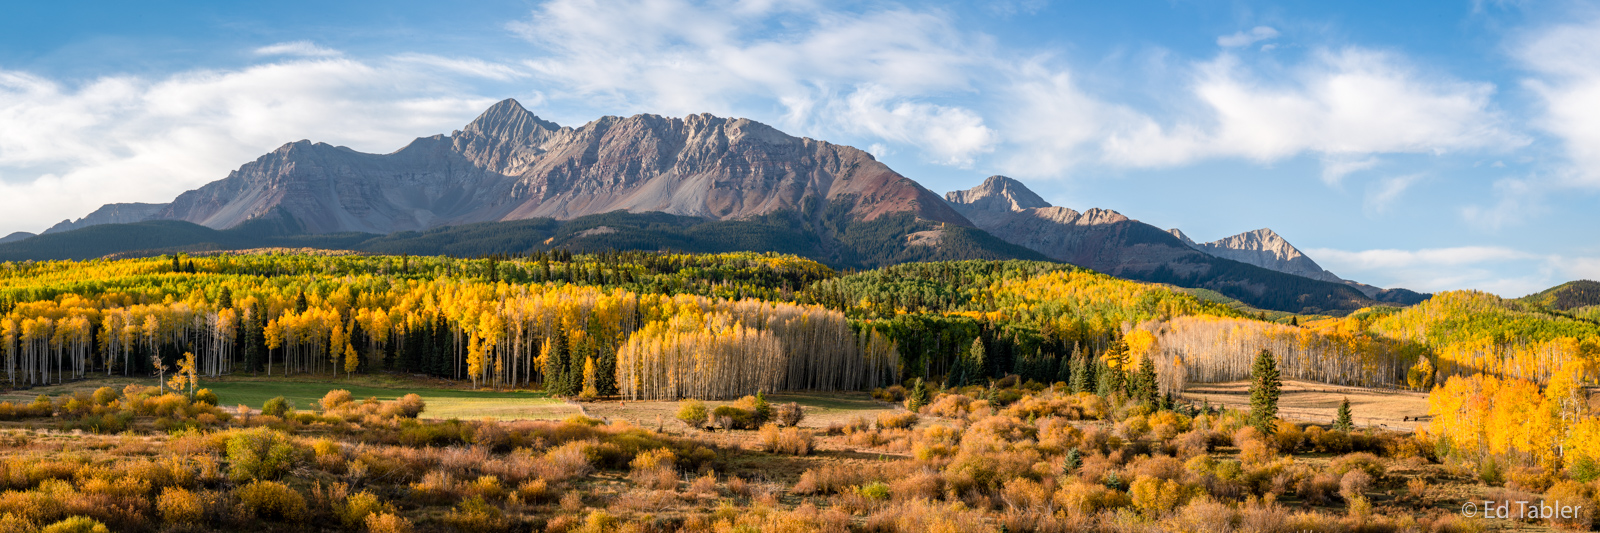 The Wilson Mesa of Uncompahgre National Forest offers some of the mostbeautiful scenery in Colorado, butto witness...